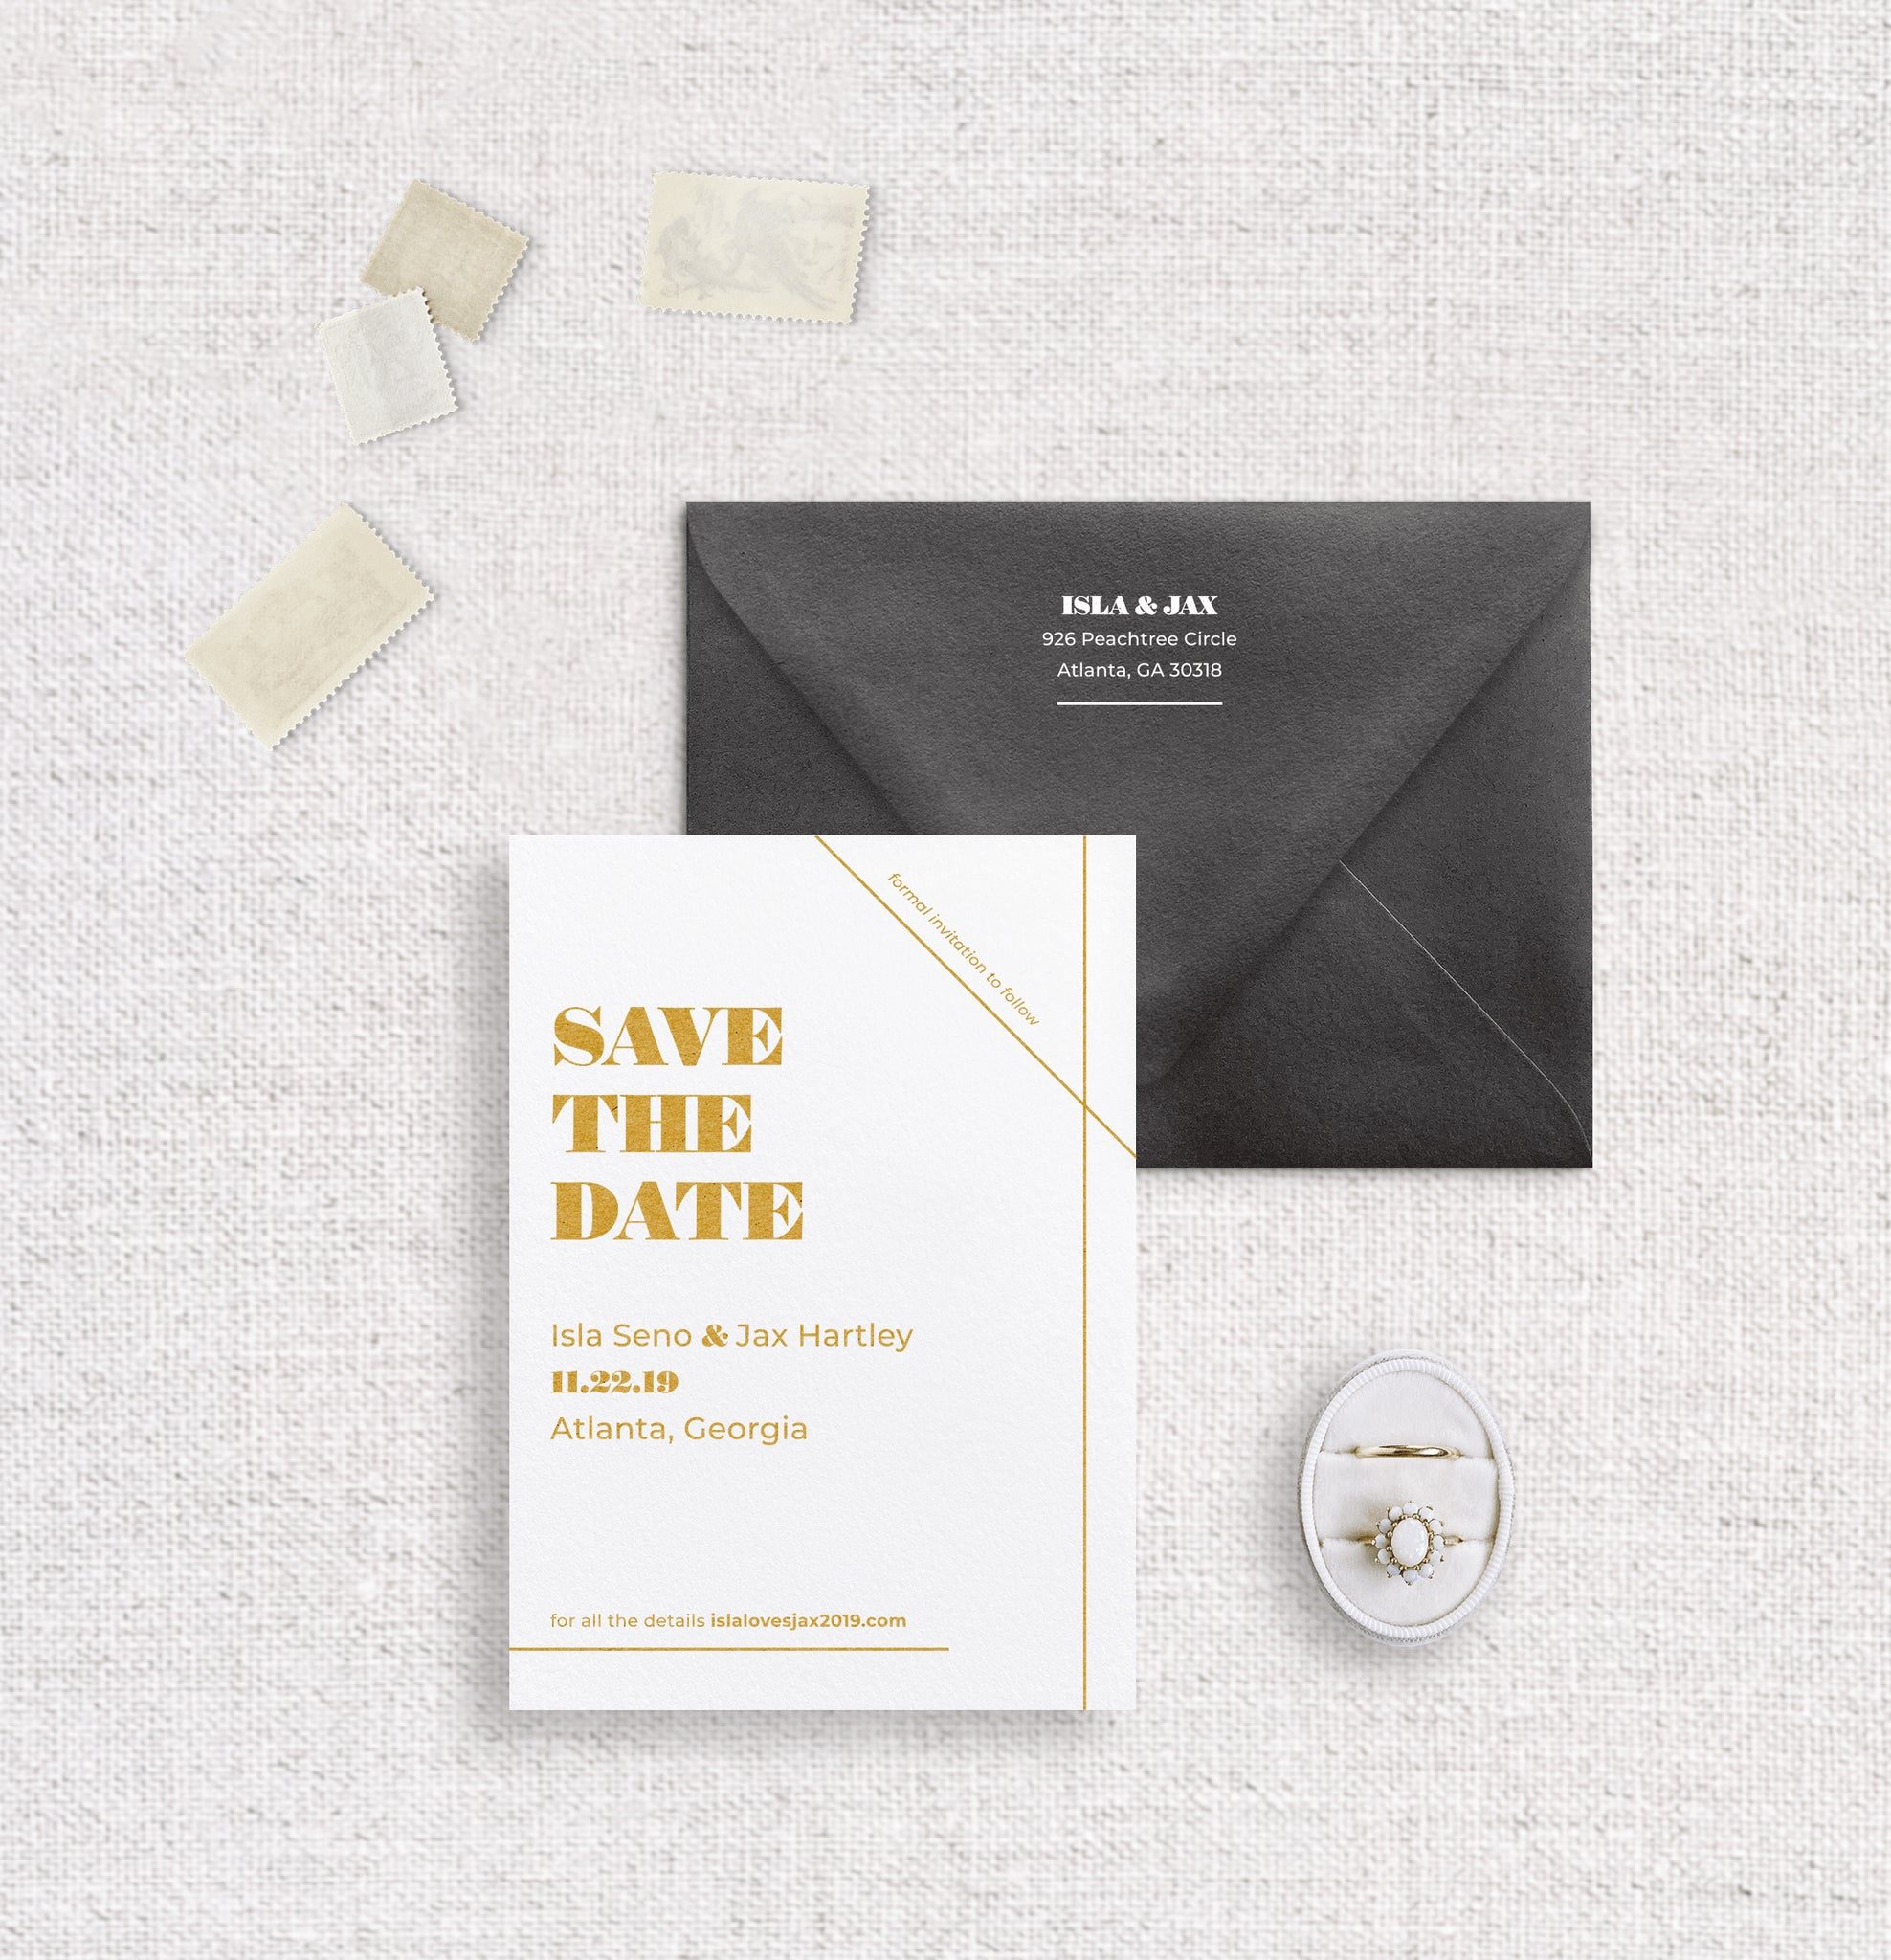 Isla save the date digitally printed on white stock with ochre ink and black envelope digitally printed with white ink